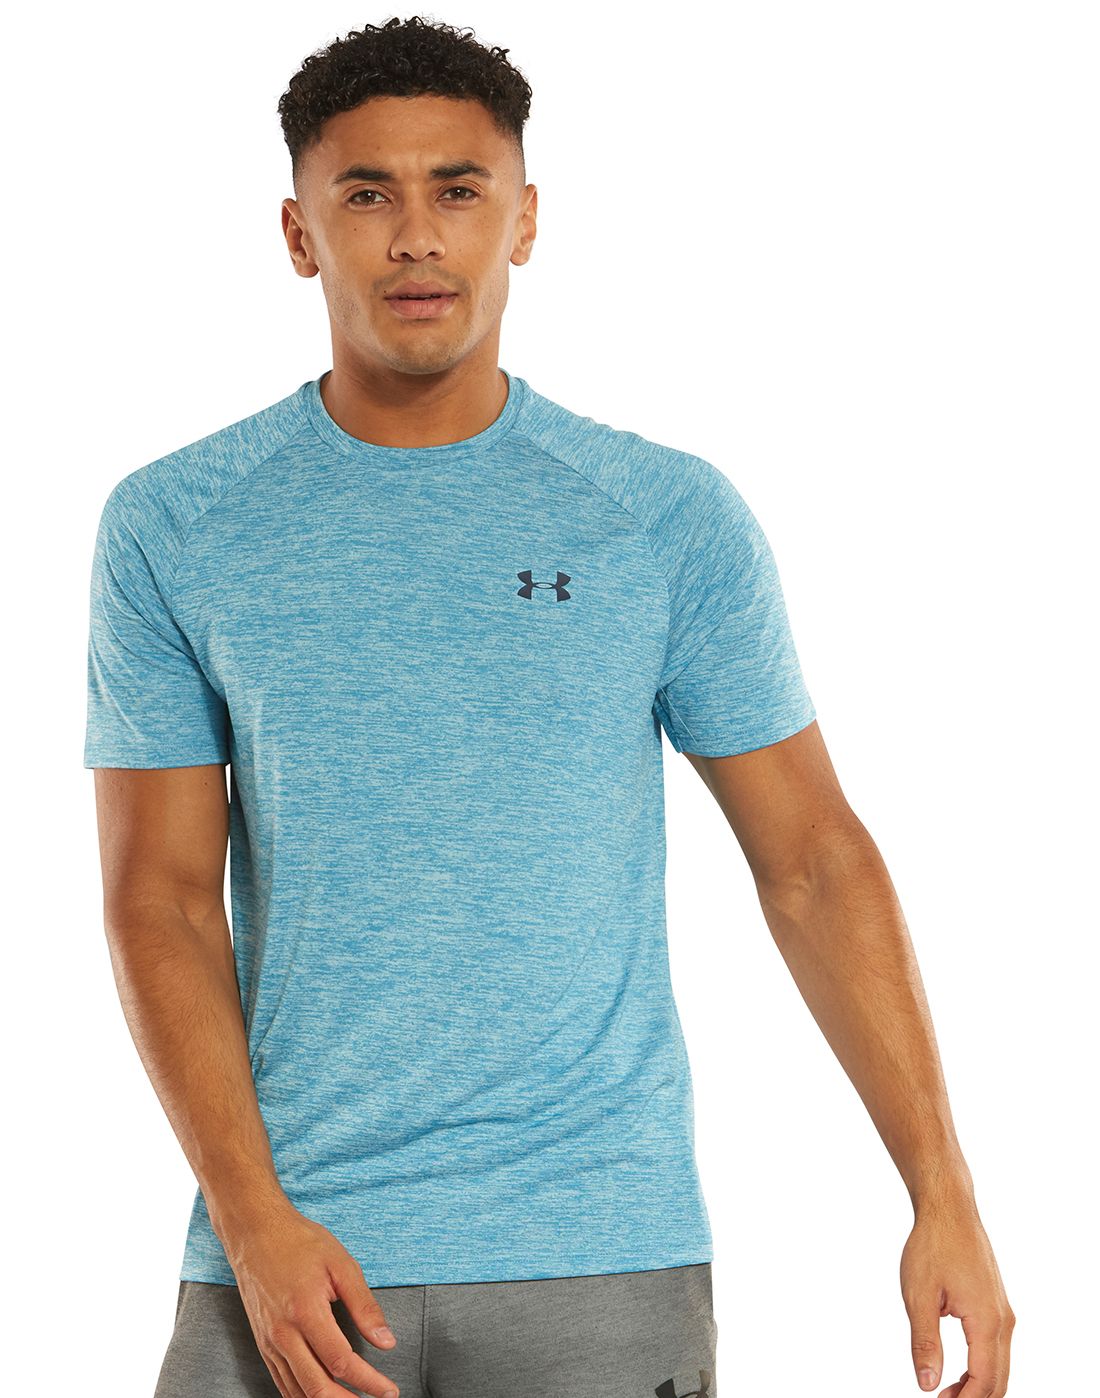 f37b527e Men's Blue Under Armour Gym T-Shirt | Life Style Sports